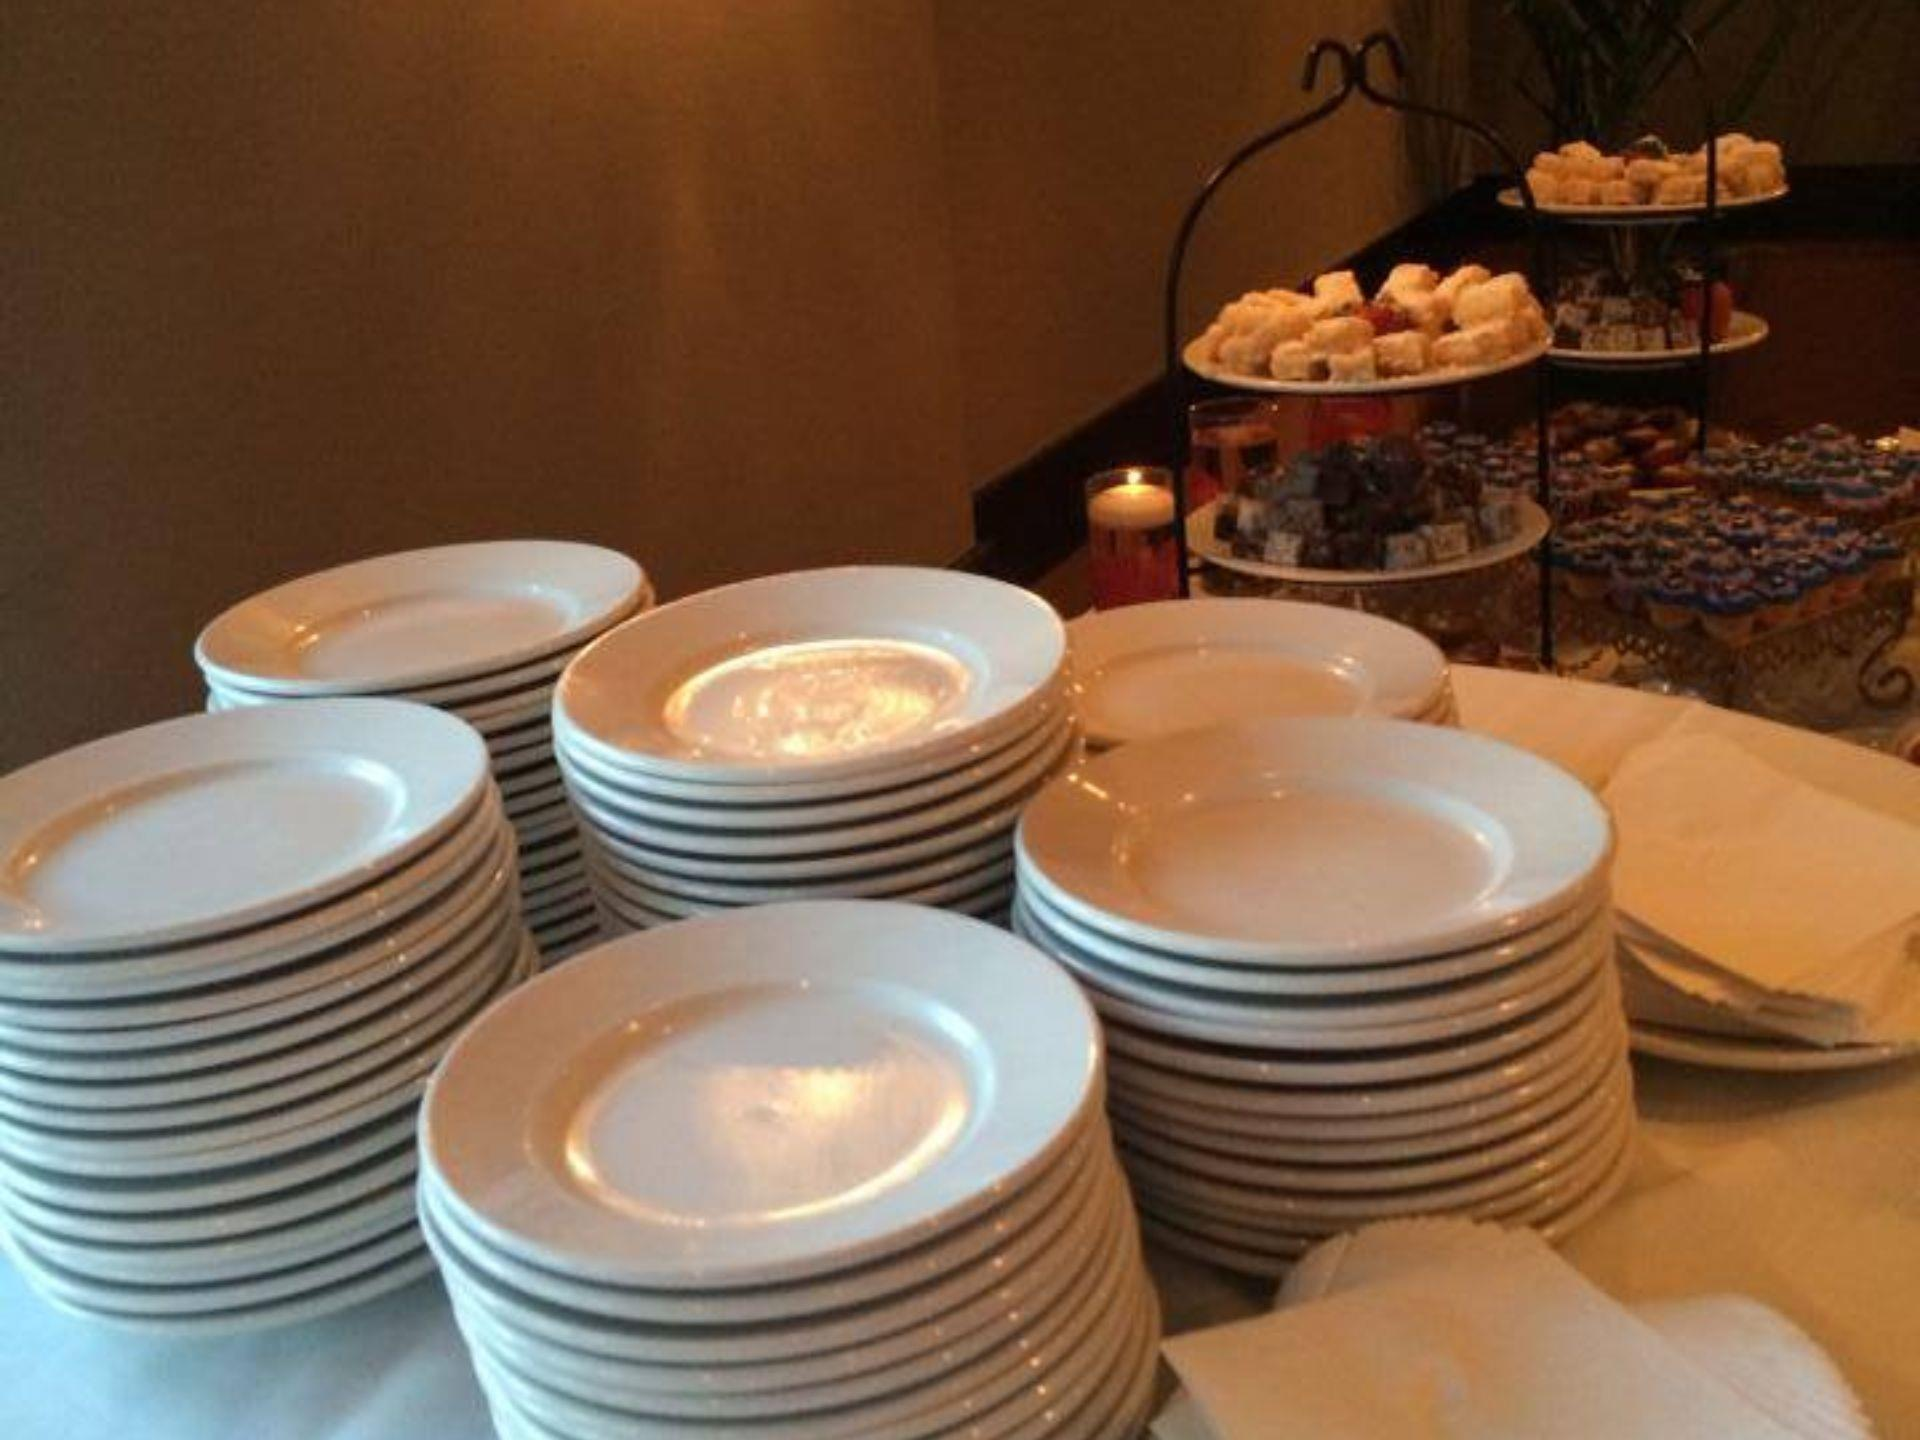 Stacked white plates on a table next to a catering display